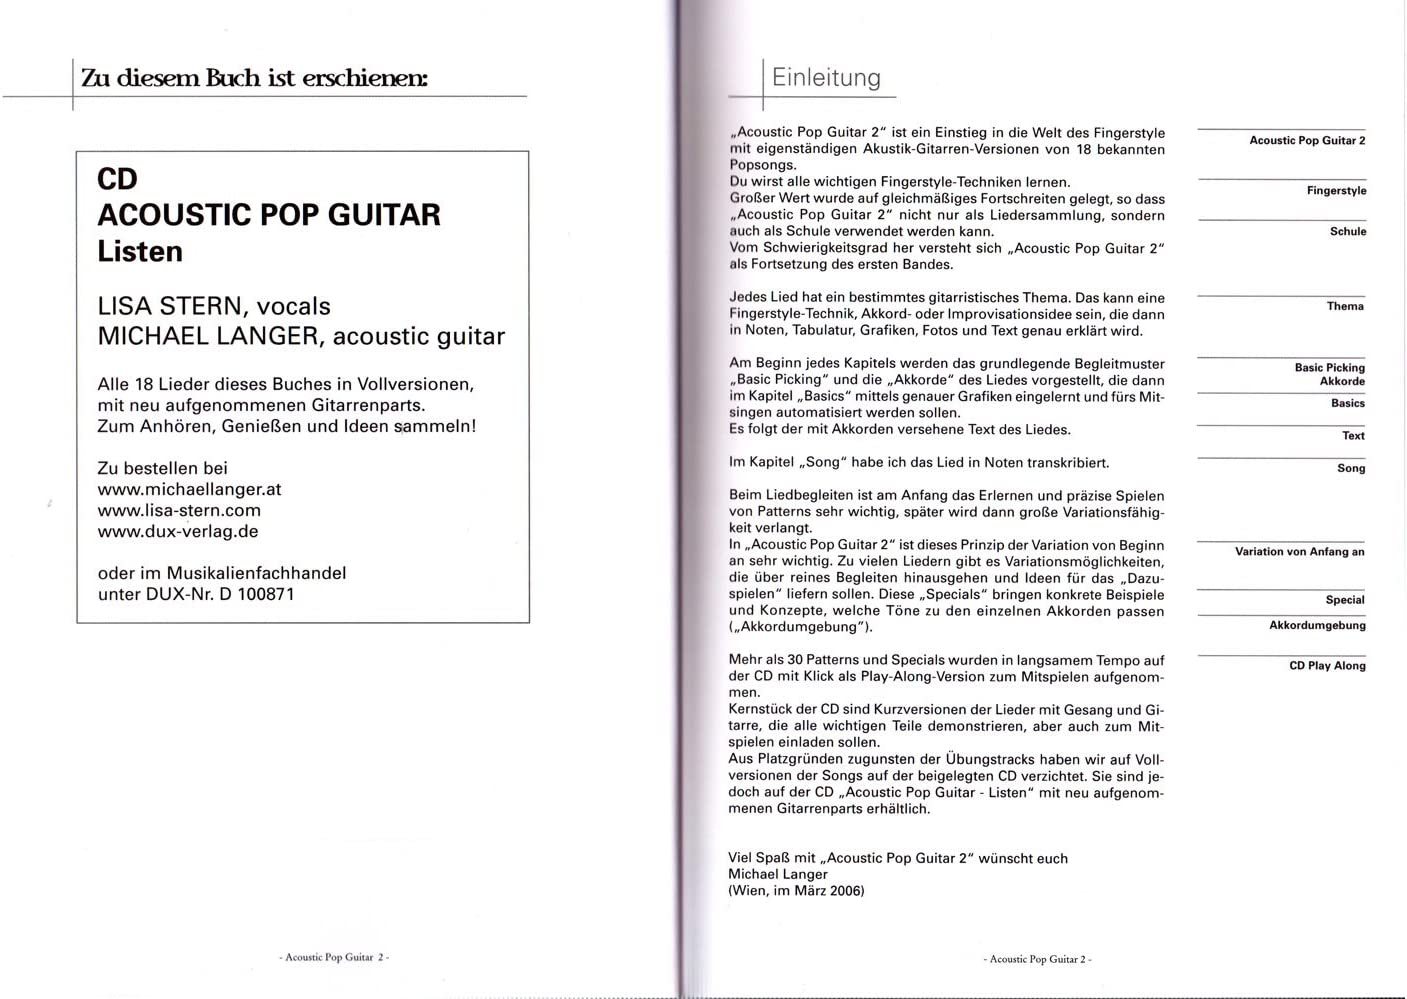 Acoustic Pop Guitar bande 2 avec CD - INTRODUCTION dans le monde ...